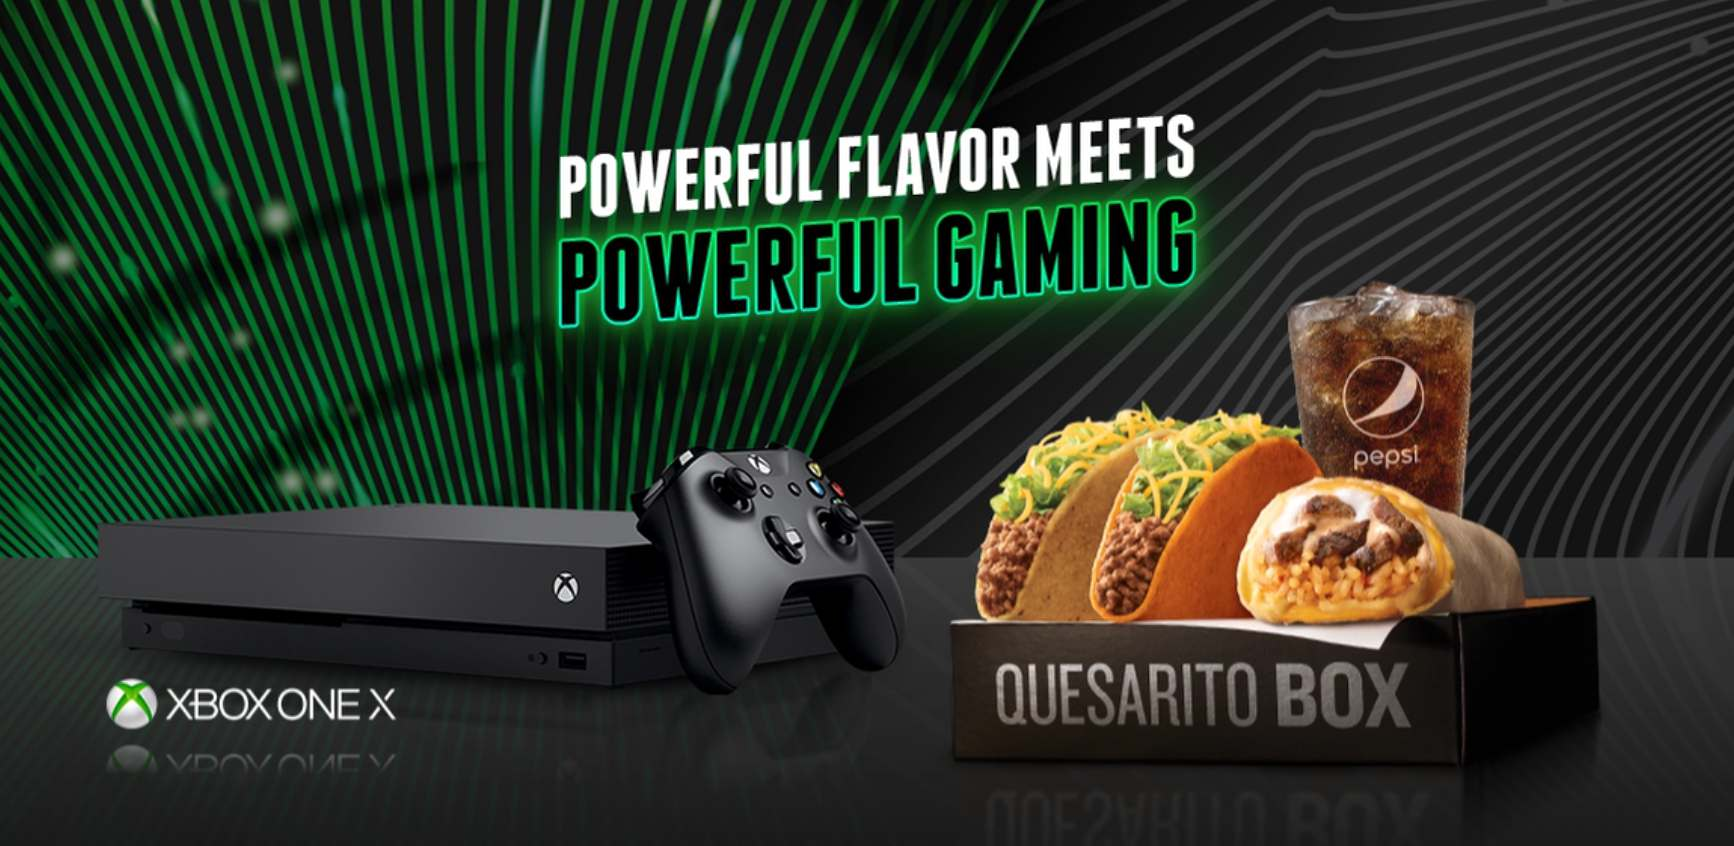 taco bell xbox one x giveaway taco bell xbox one x competition giveaway 9544